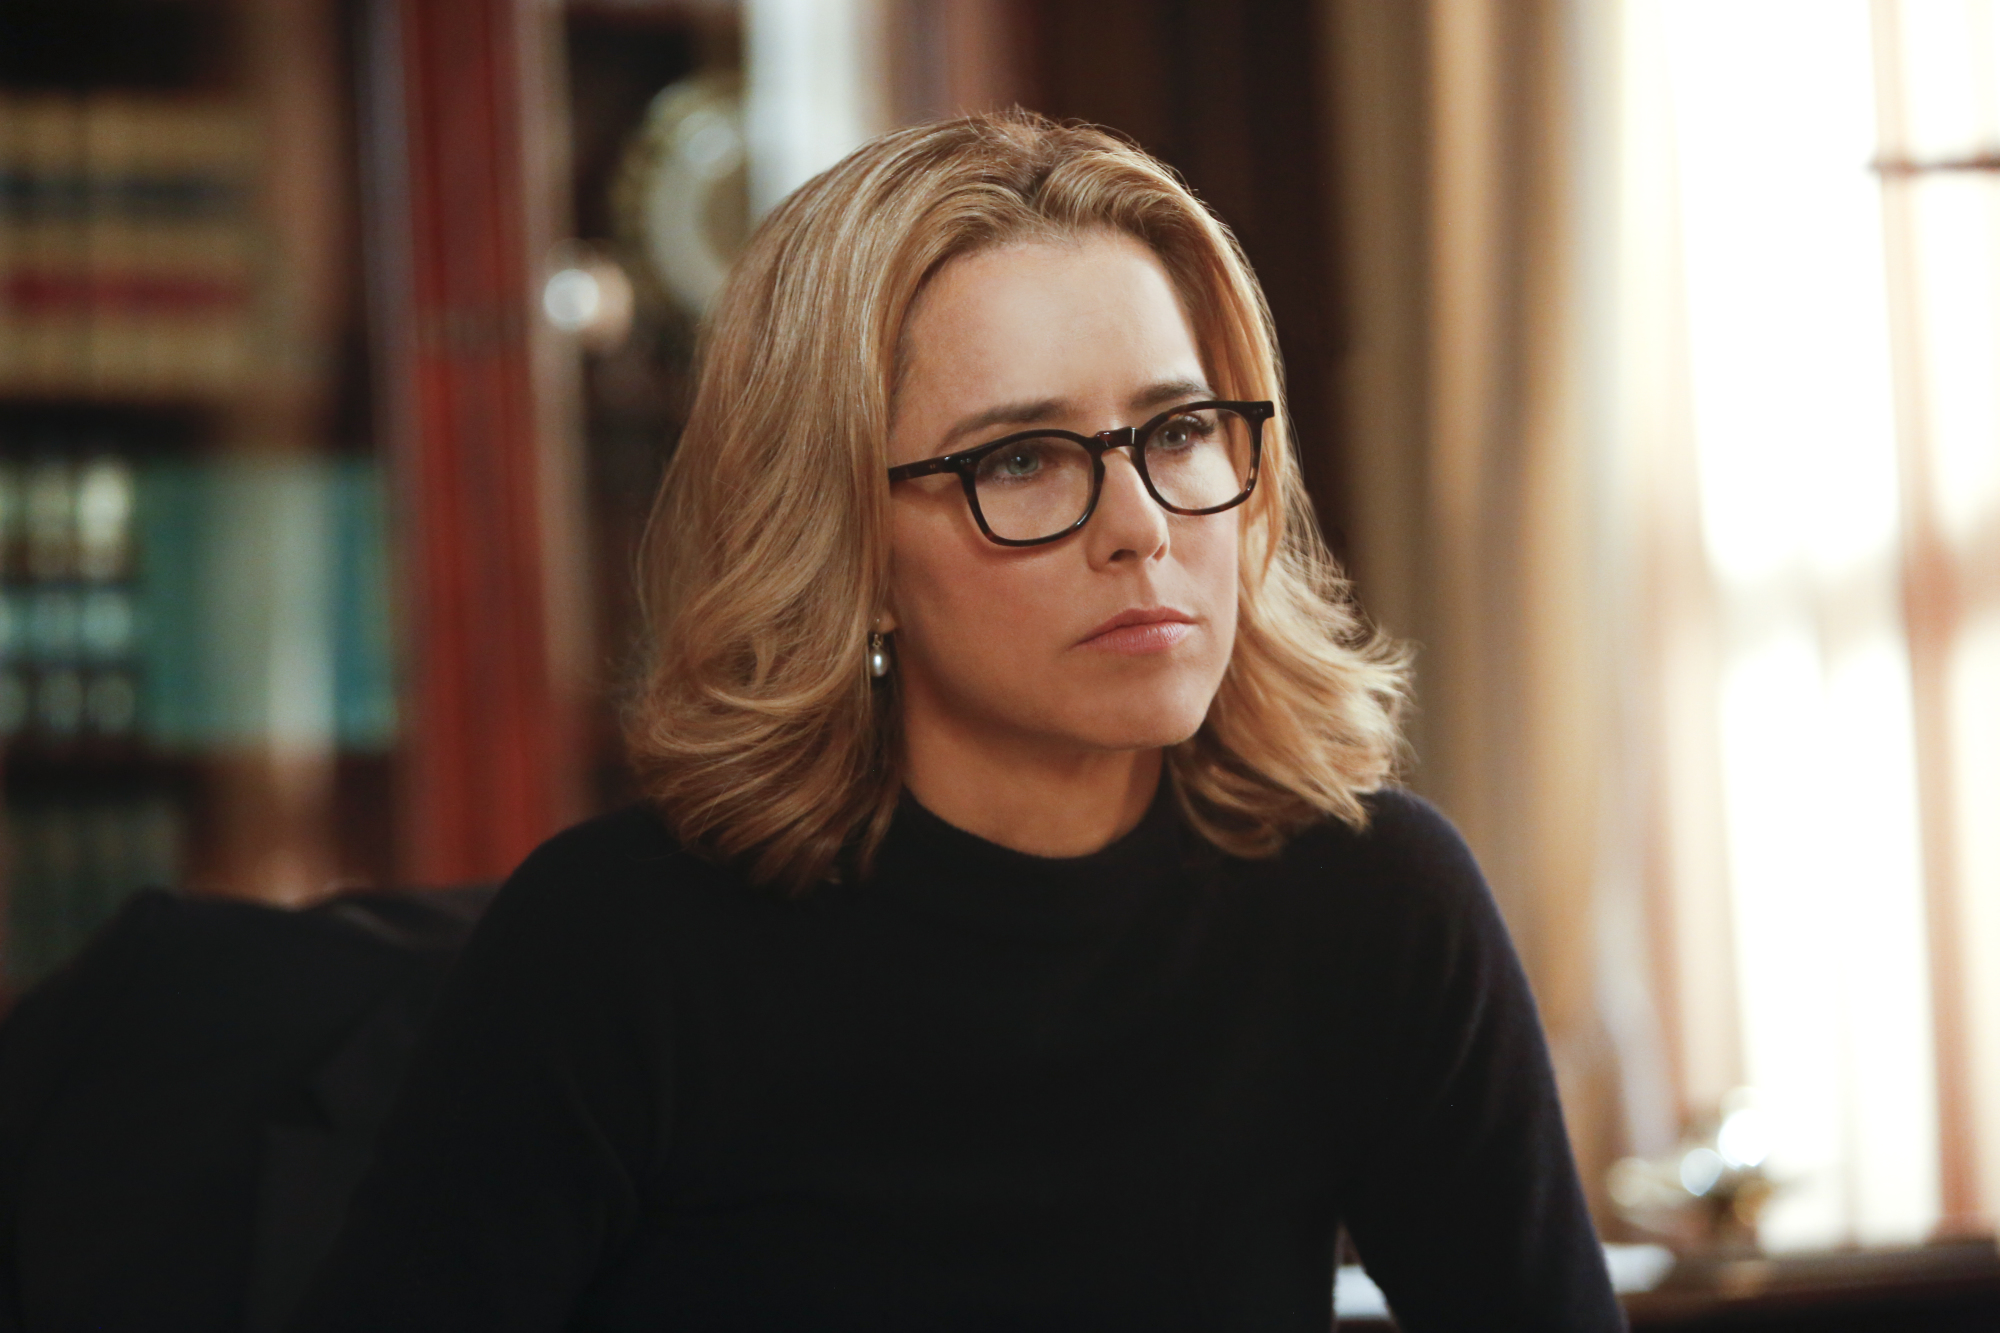 9. Téa Leoni is a Pisces.